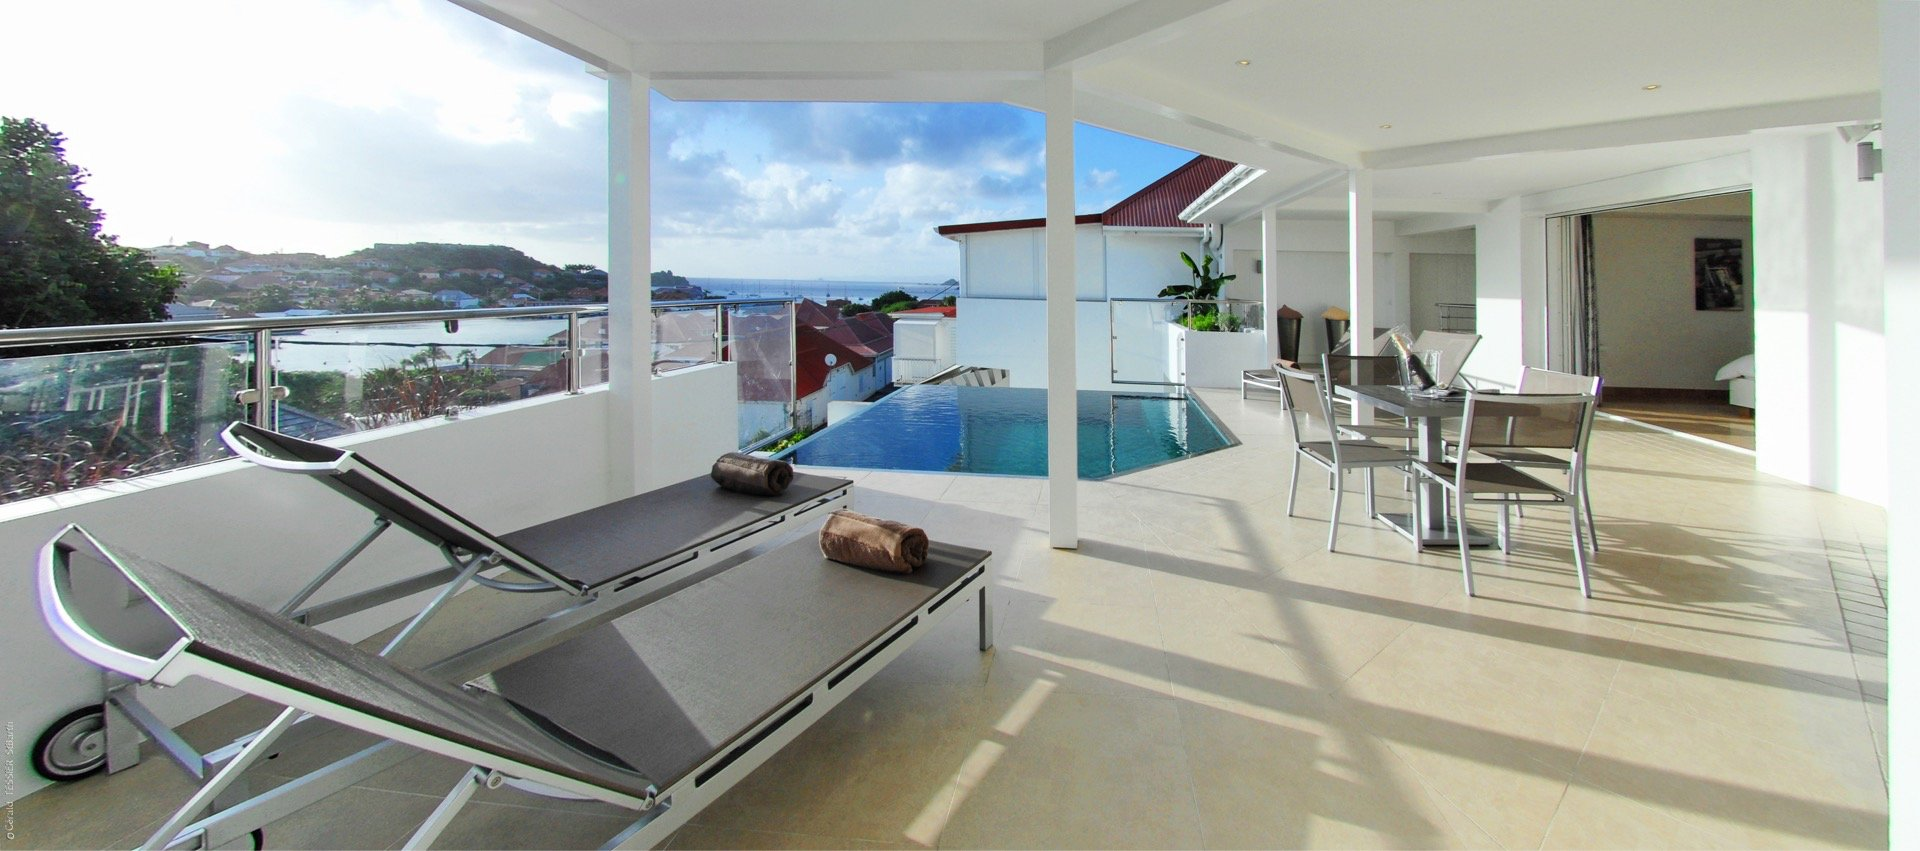 Luxury villa rentals caribbean - St barthelemy - Gustavia - No location 4 - Villa Wastra - Image 1/29